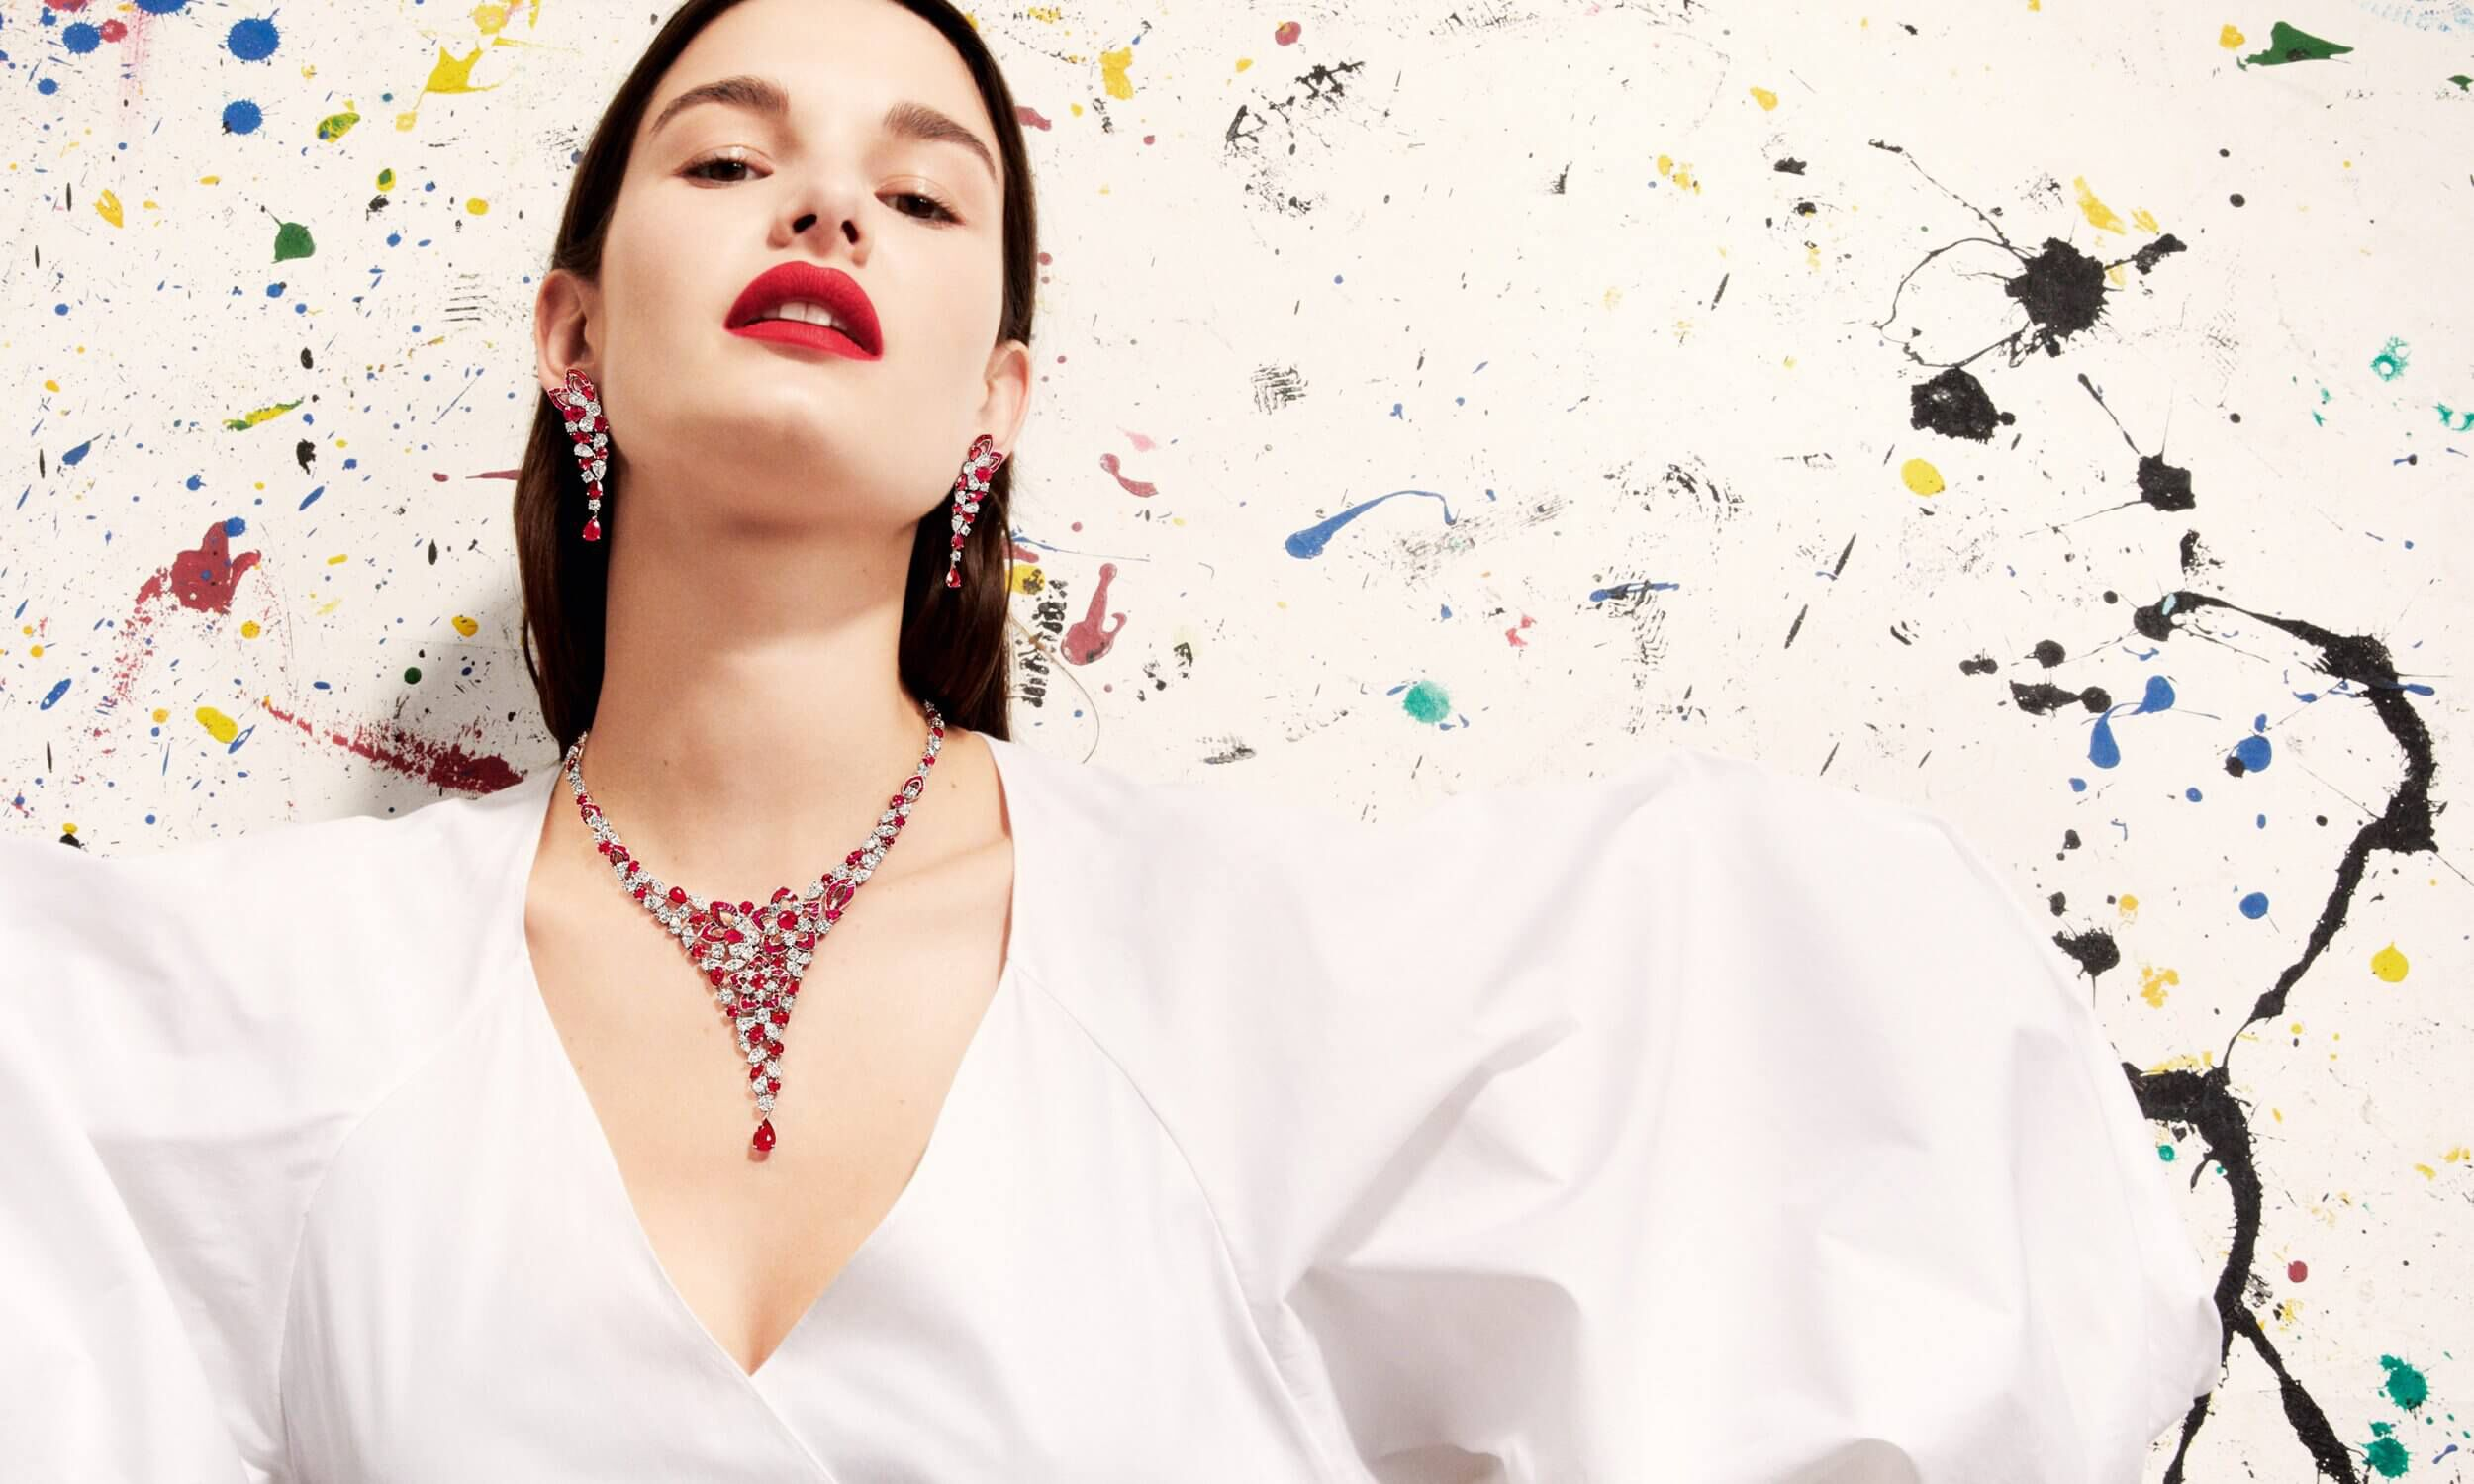 Graff Ruby and Diamond Peony Design necklace by Graff and Ruby and Diamond Peony earrings worn by a model